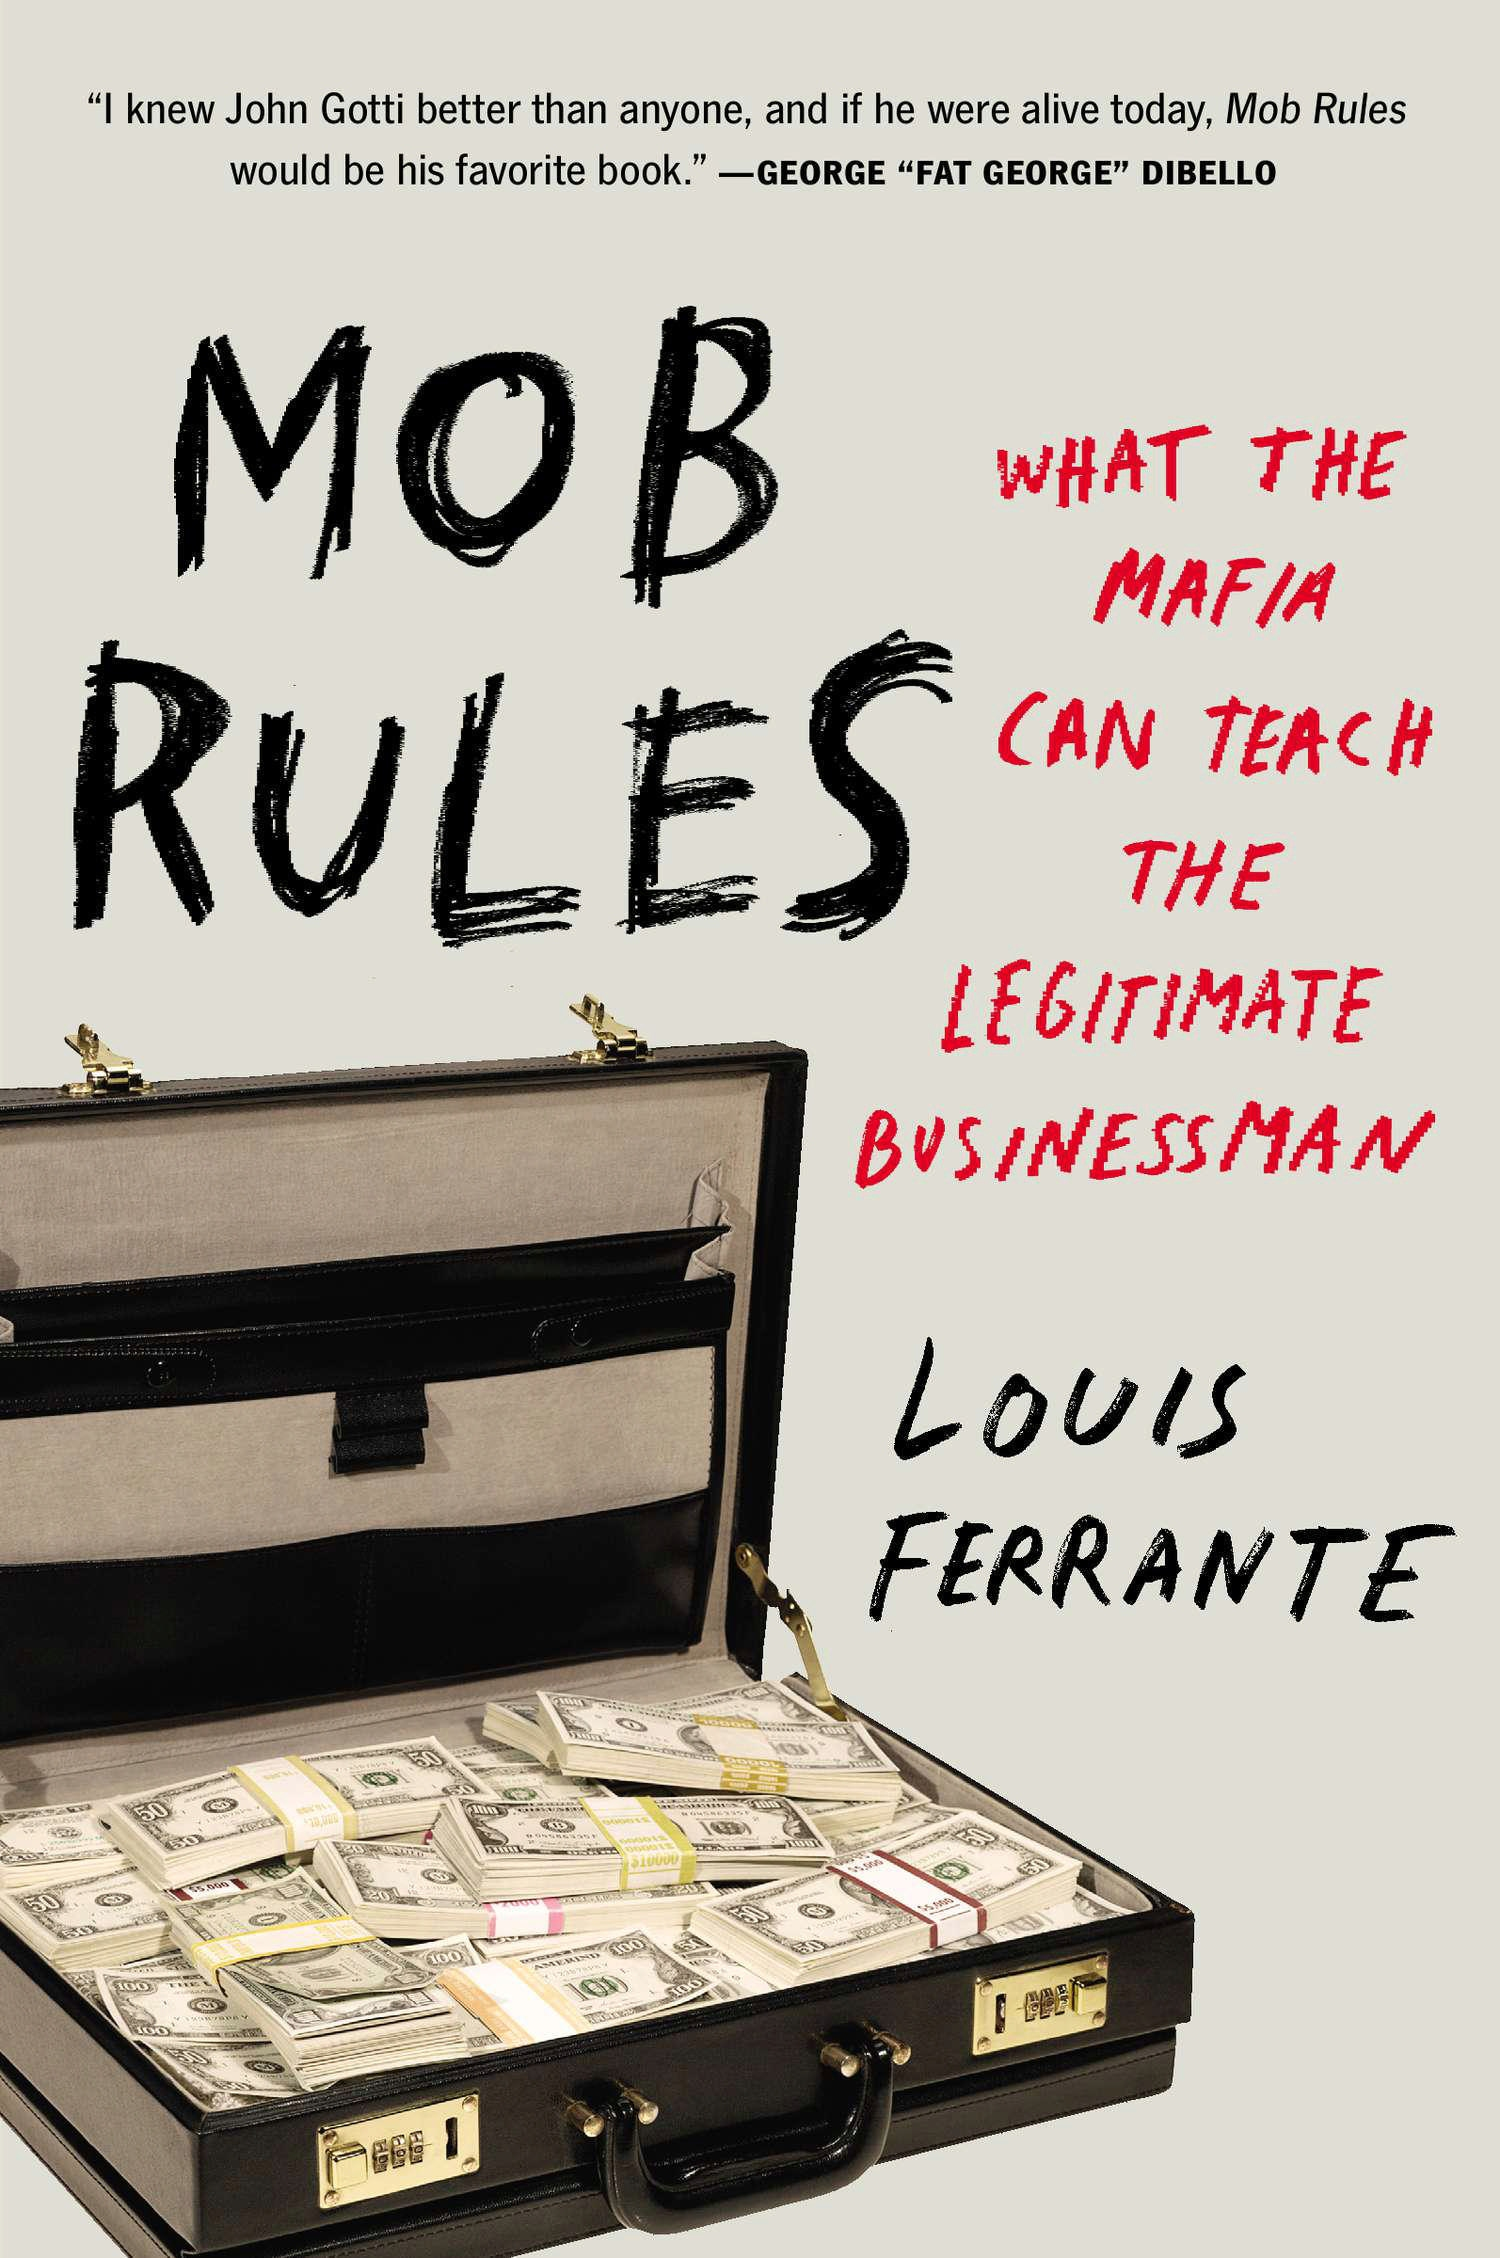 Mob Rules: What the Mafia Can Teach the Legitimate Businessman